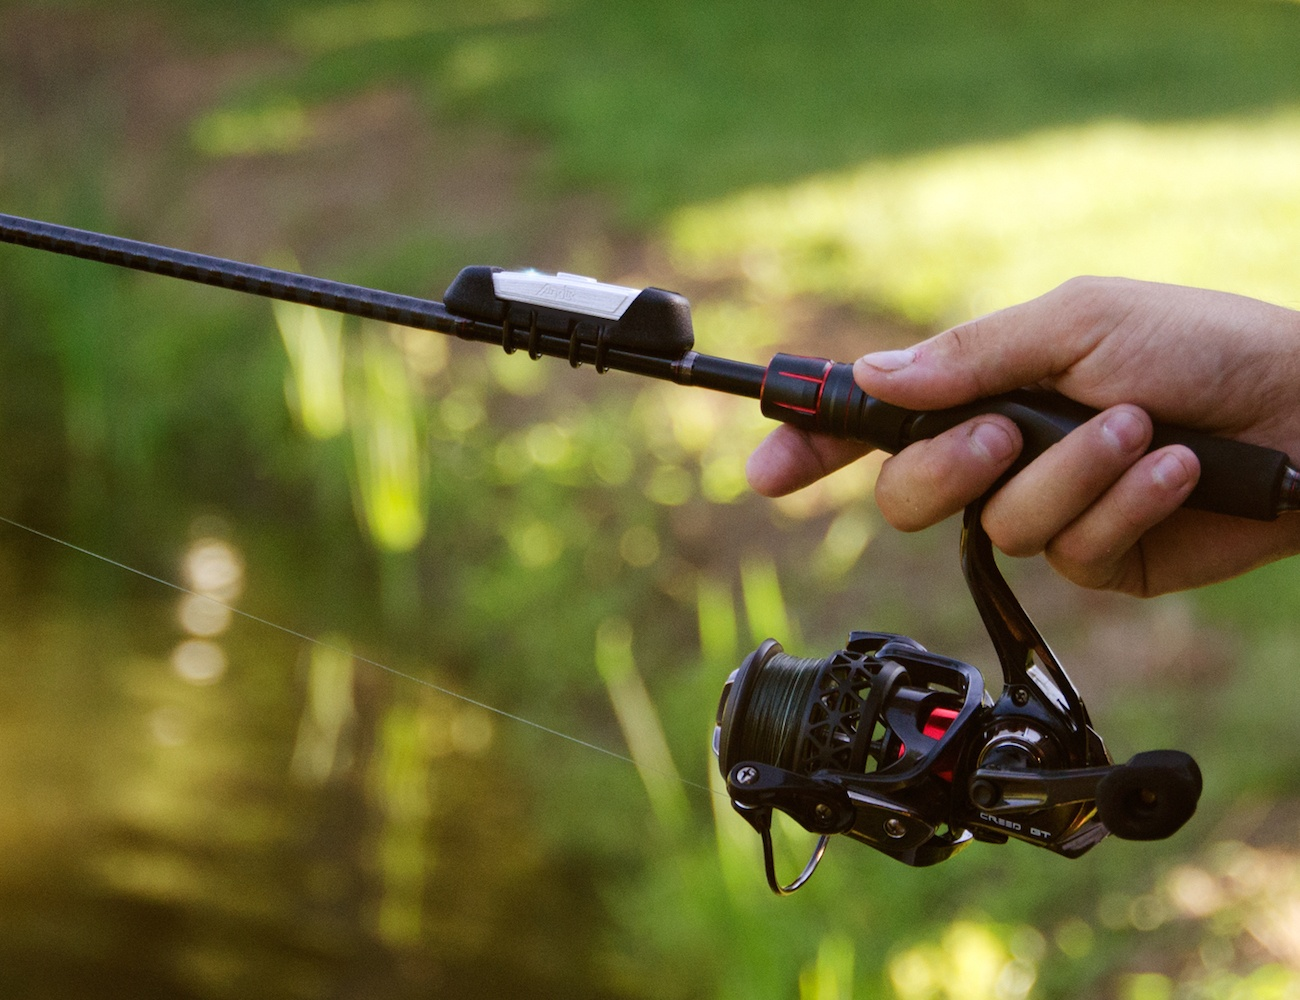 ANGLR Tracker Rod-Mounted Fishing Tracker